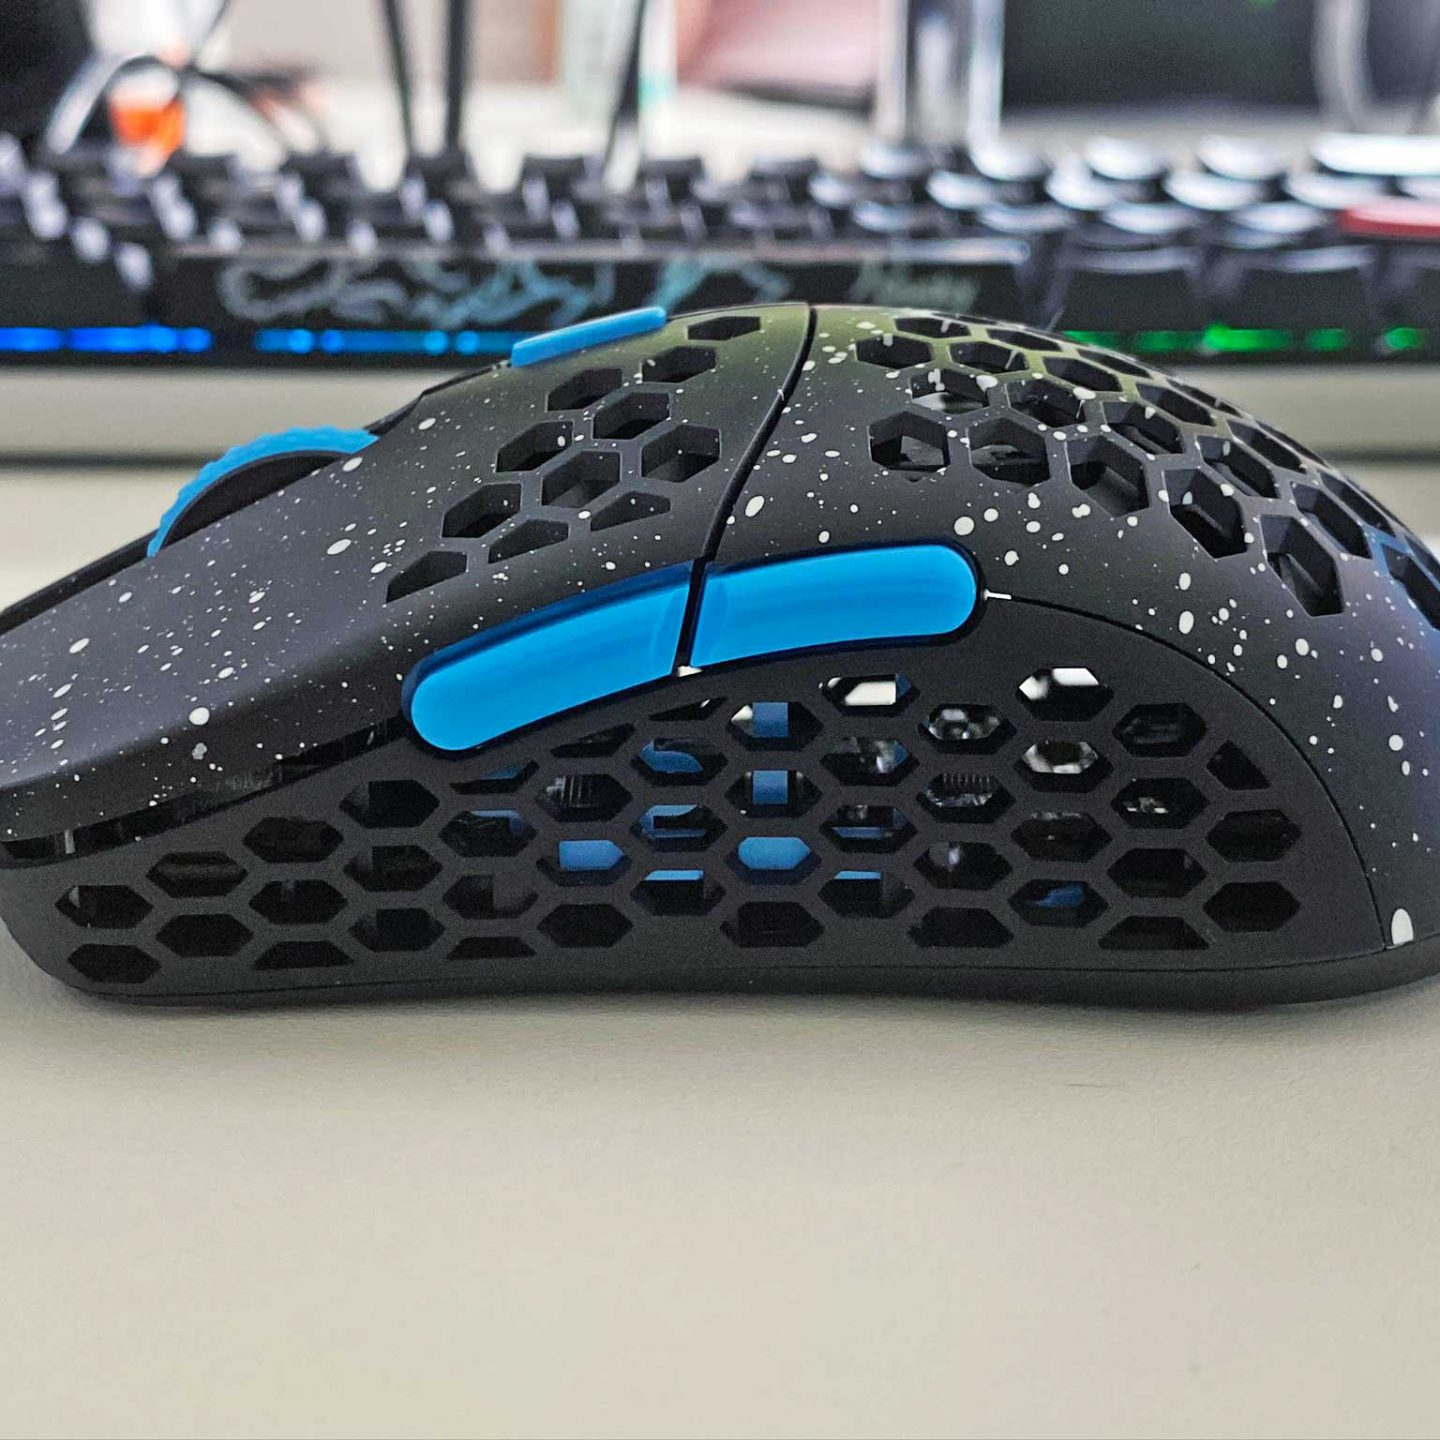 Hati-S light weight gaming mouse